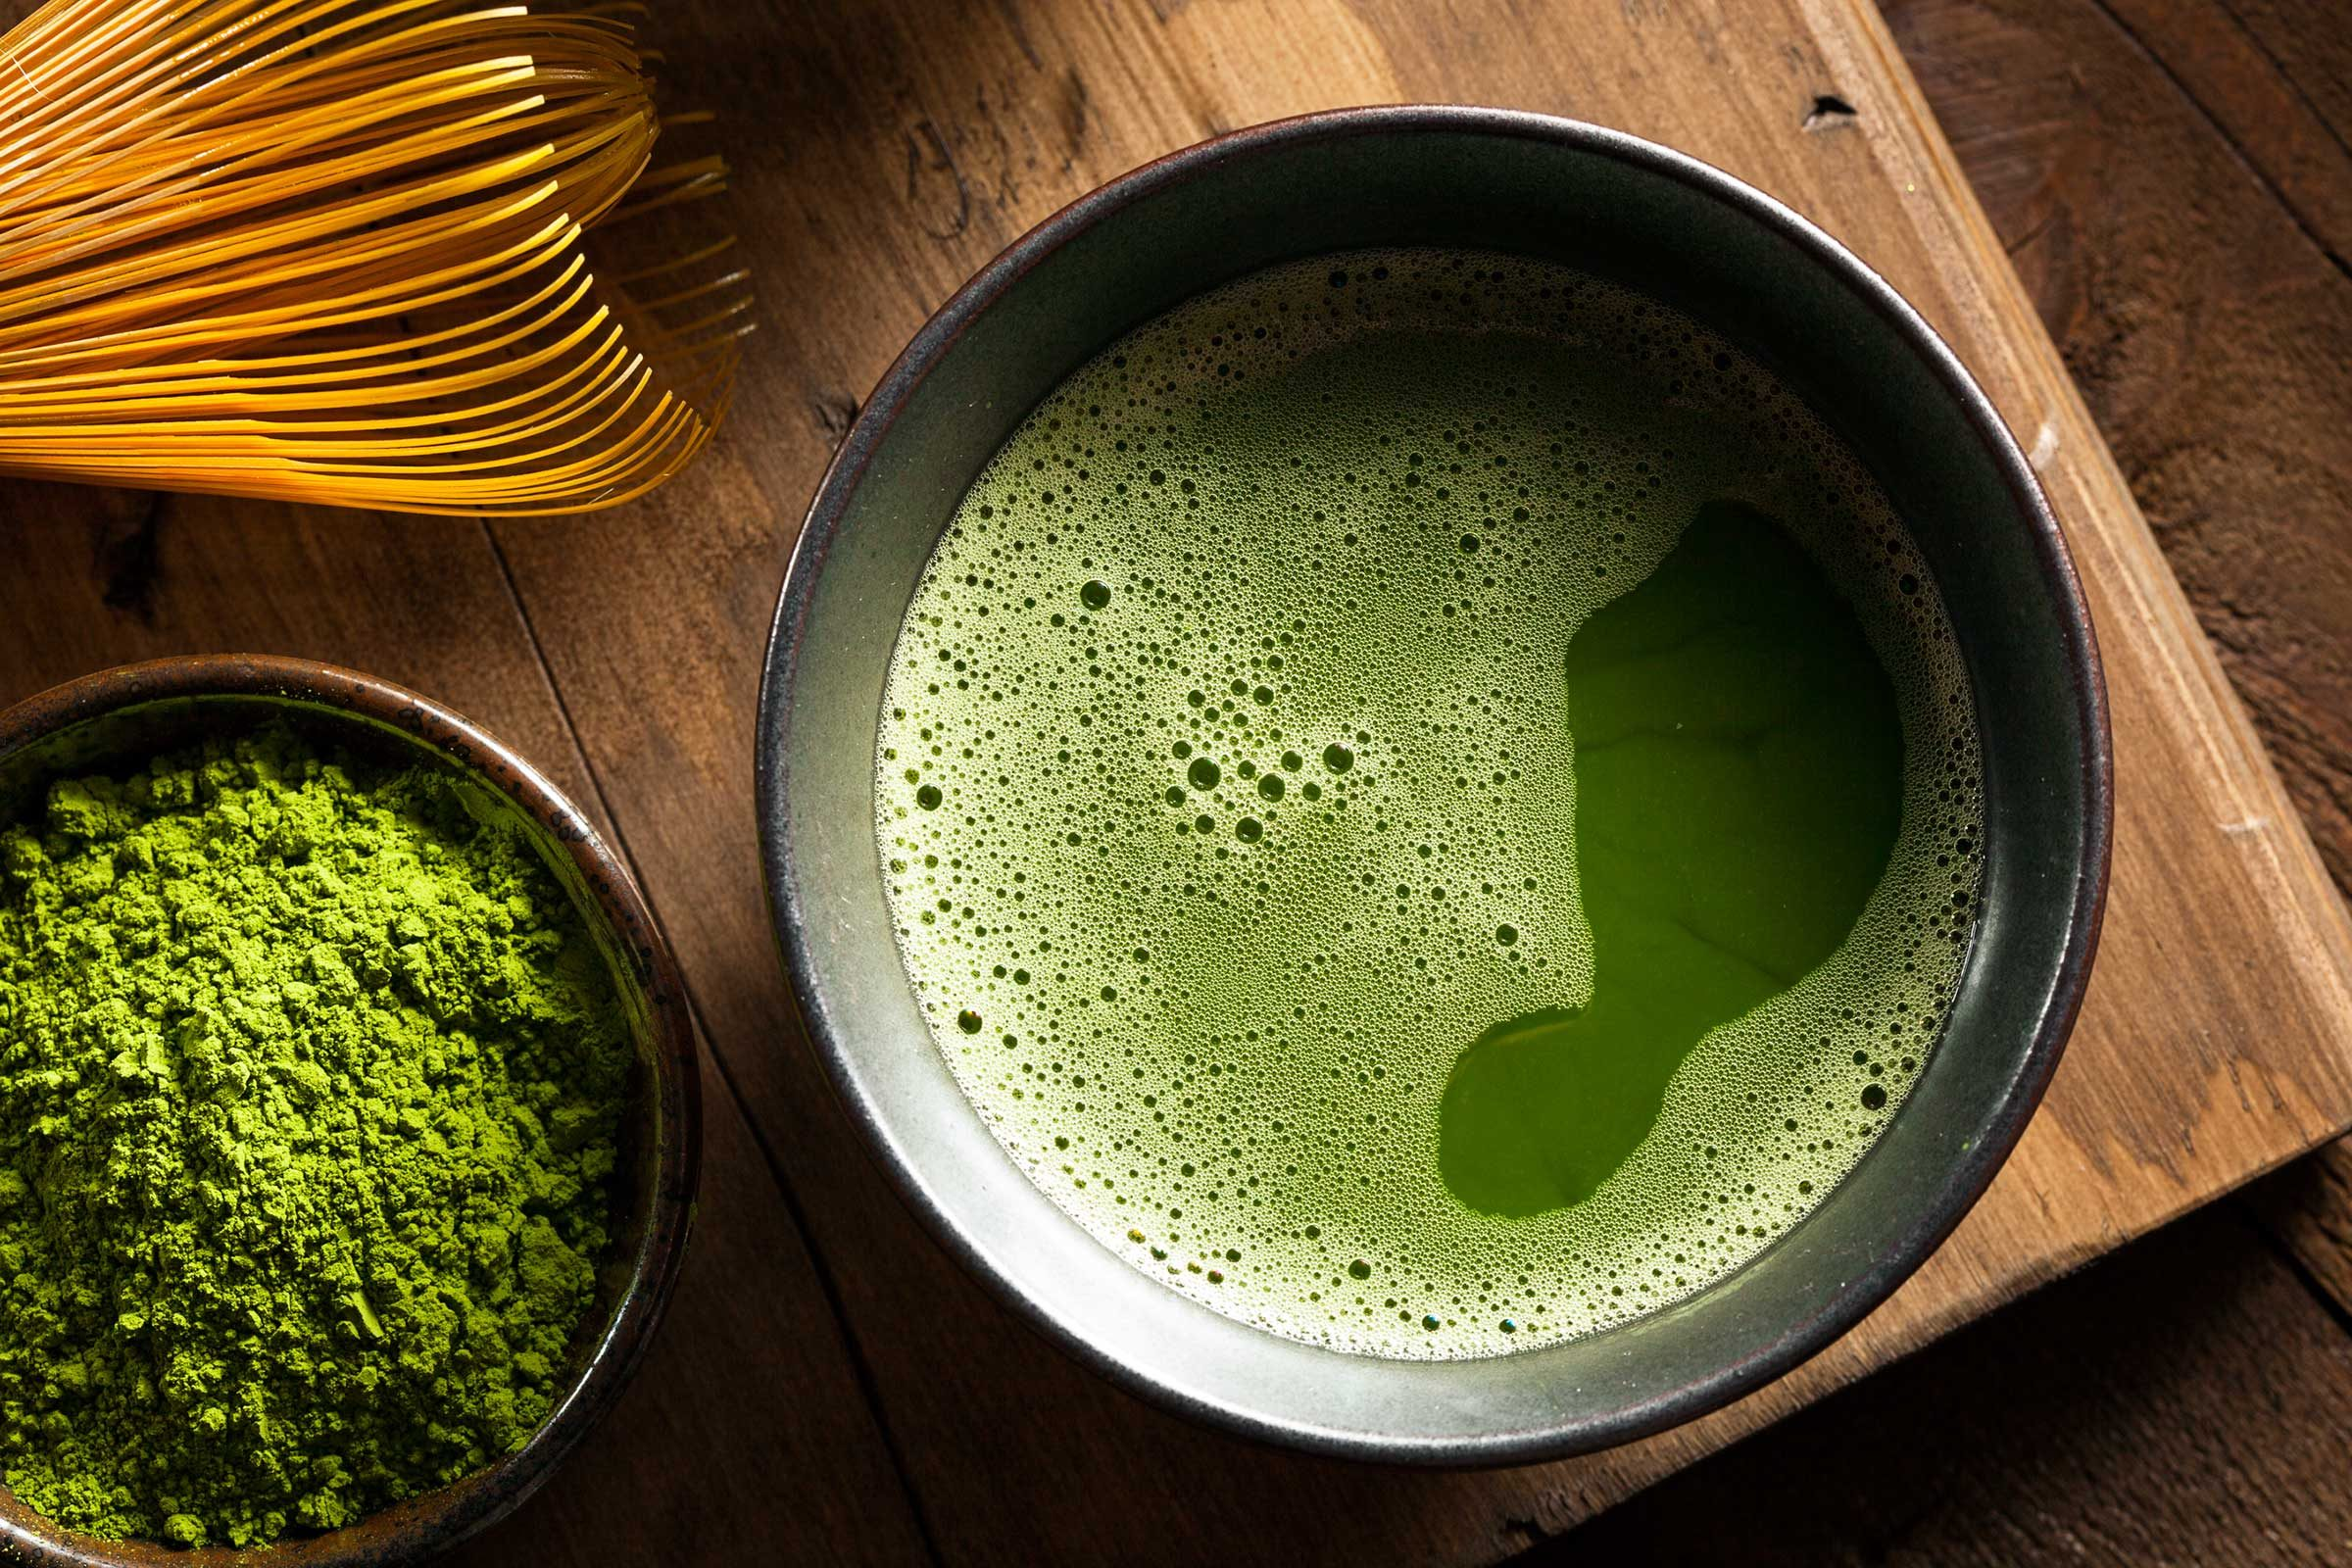 Matcha Tea Benefits: Real or Hype? | Reader's Digest